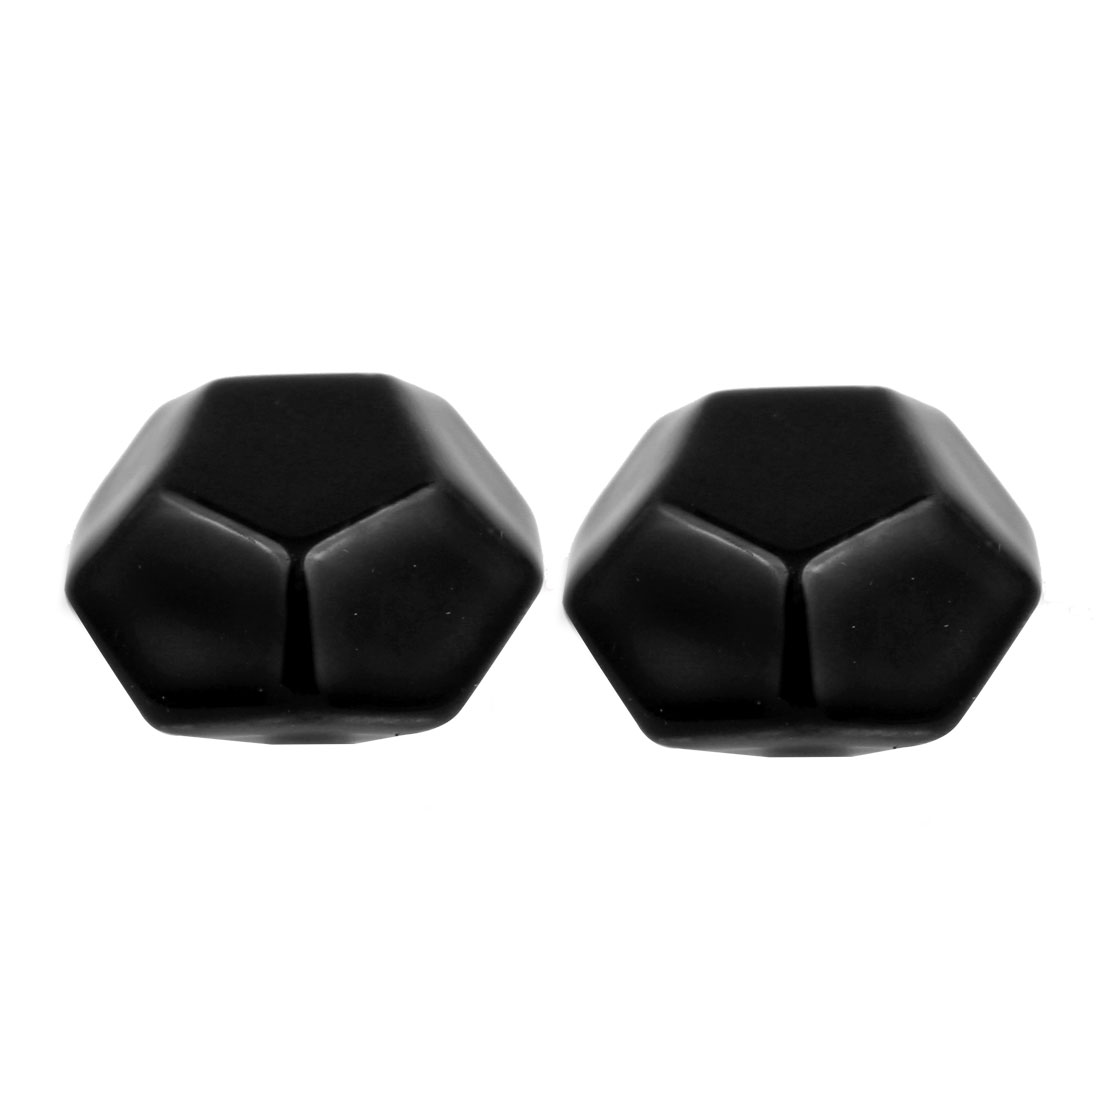 Cabinet Wardrobe Drawer Door Pull Diamond Shape Ceramic Knobs Handle Black 2pcs